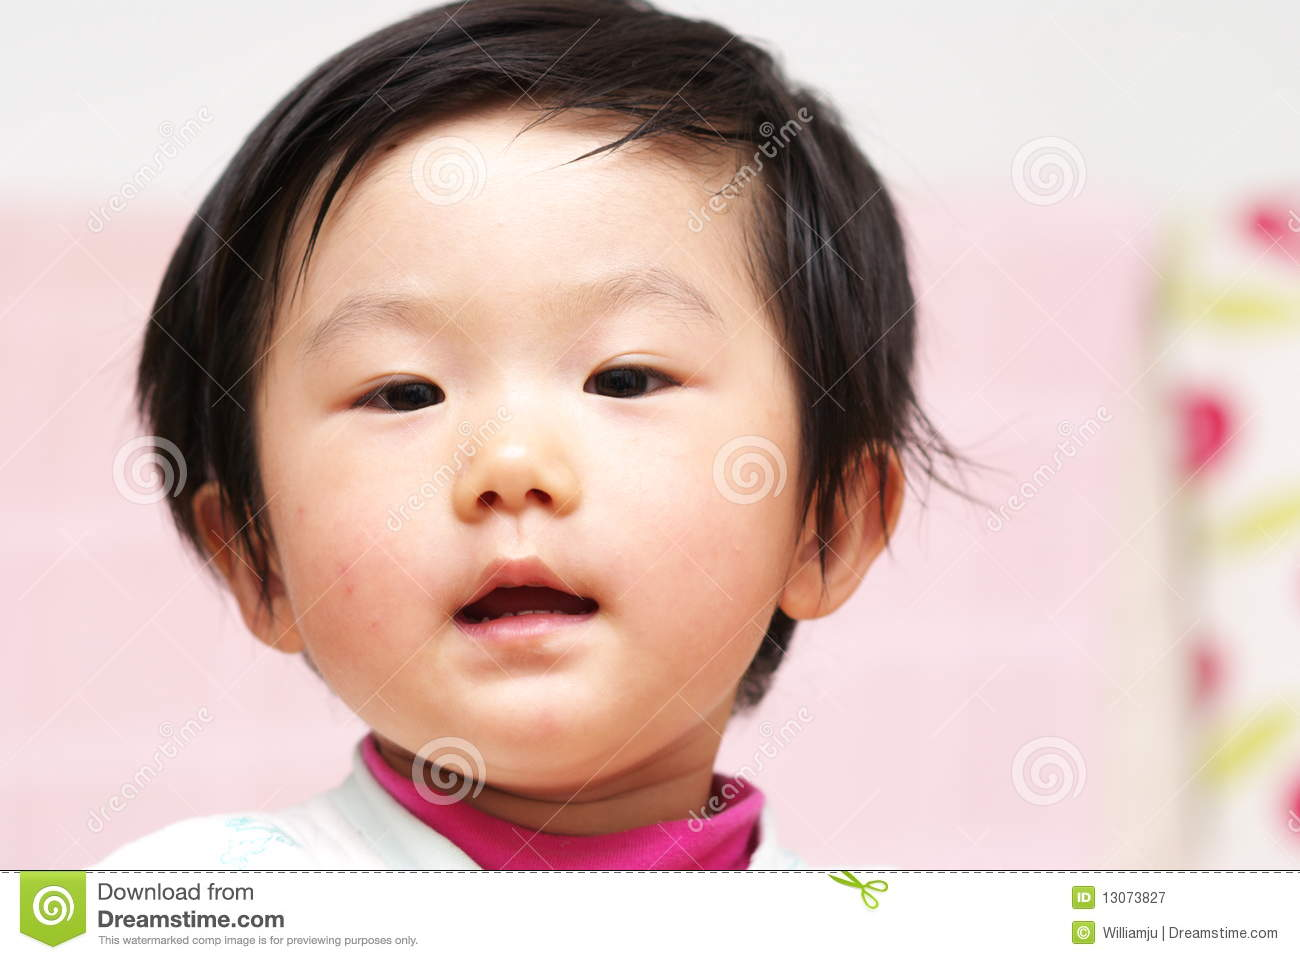 Asian baby stock image  Image of laugh, expression, chinese - 13073827